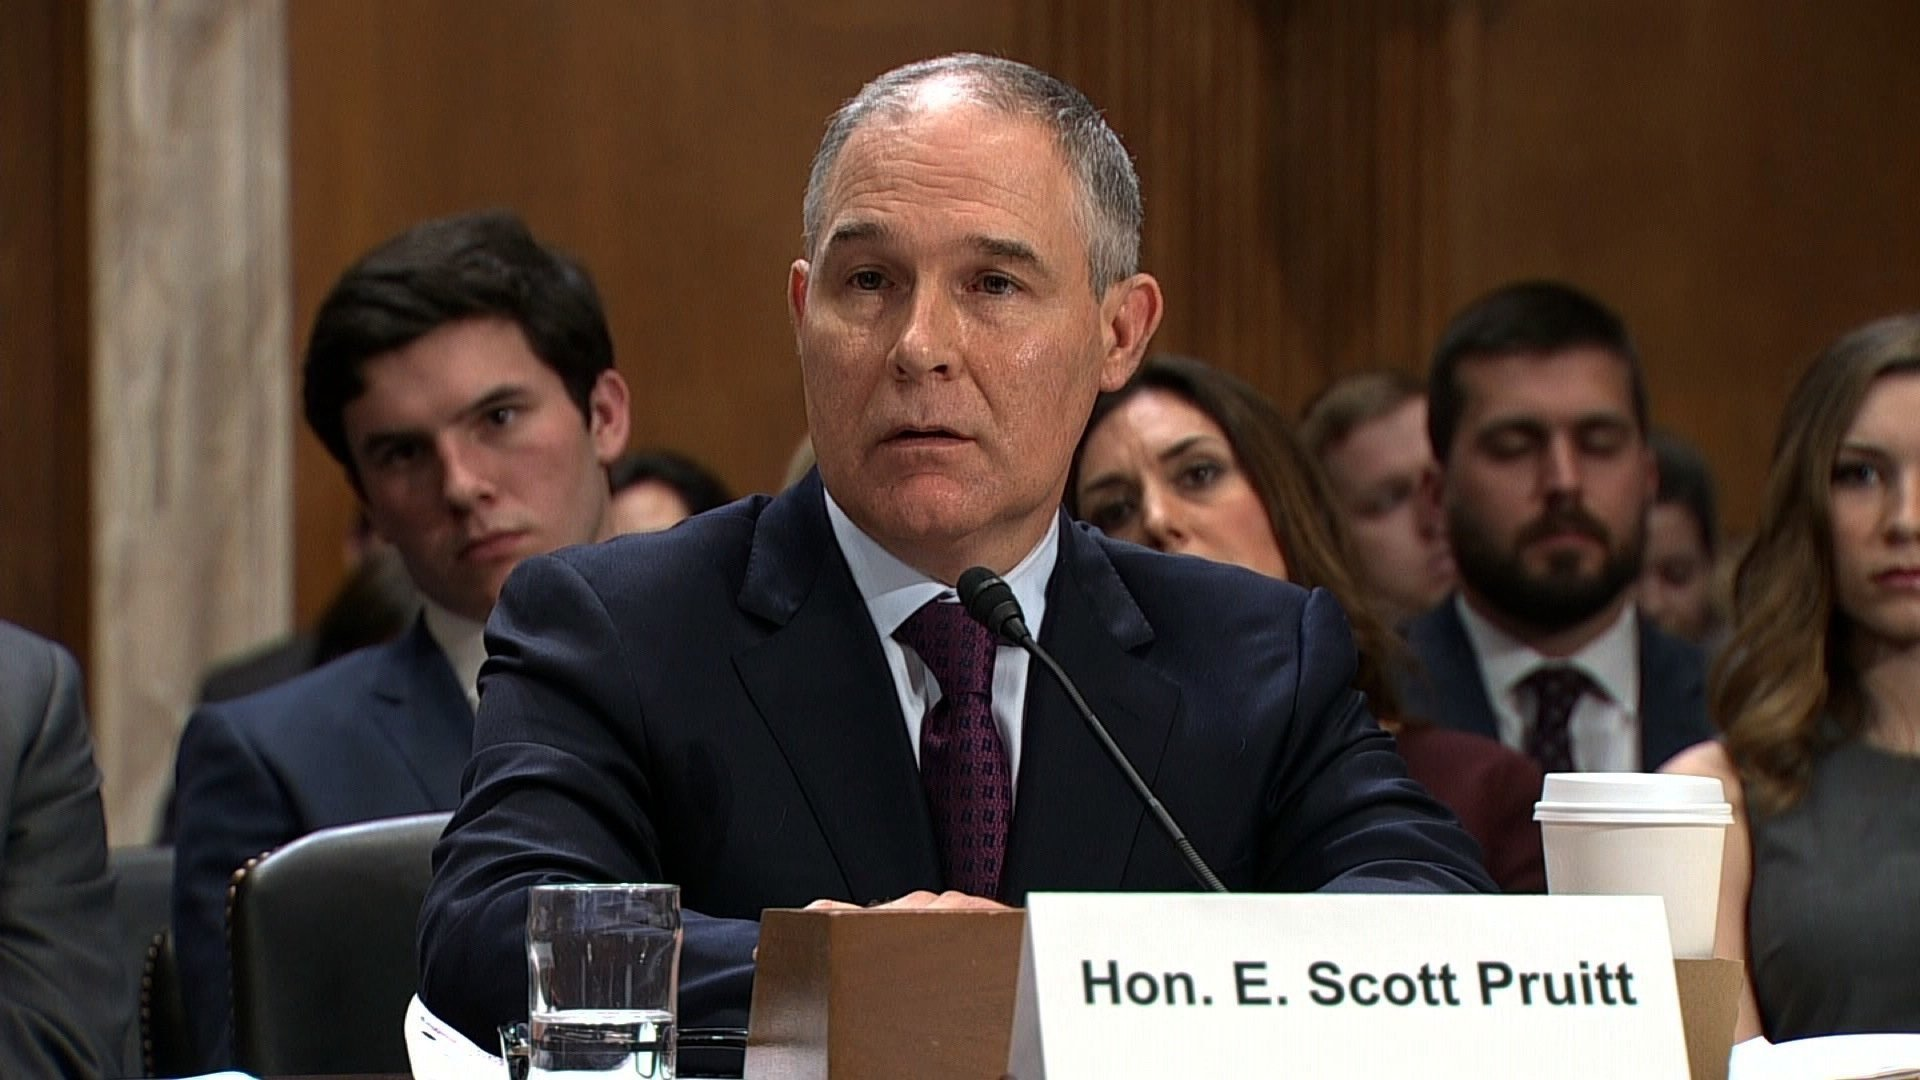 Ex-EPA chief: Scott Pruitt unfit to run EPA